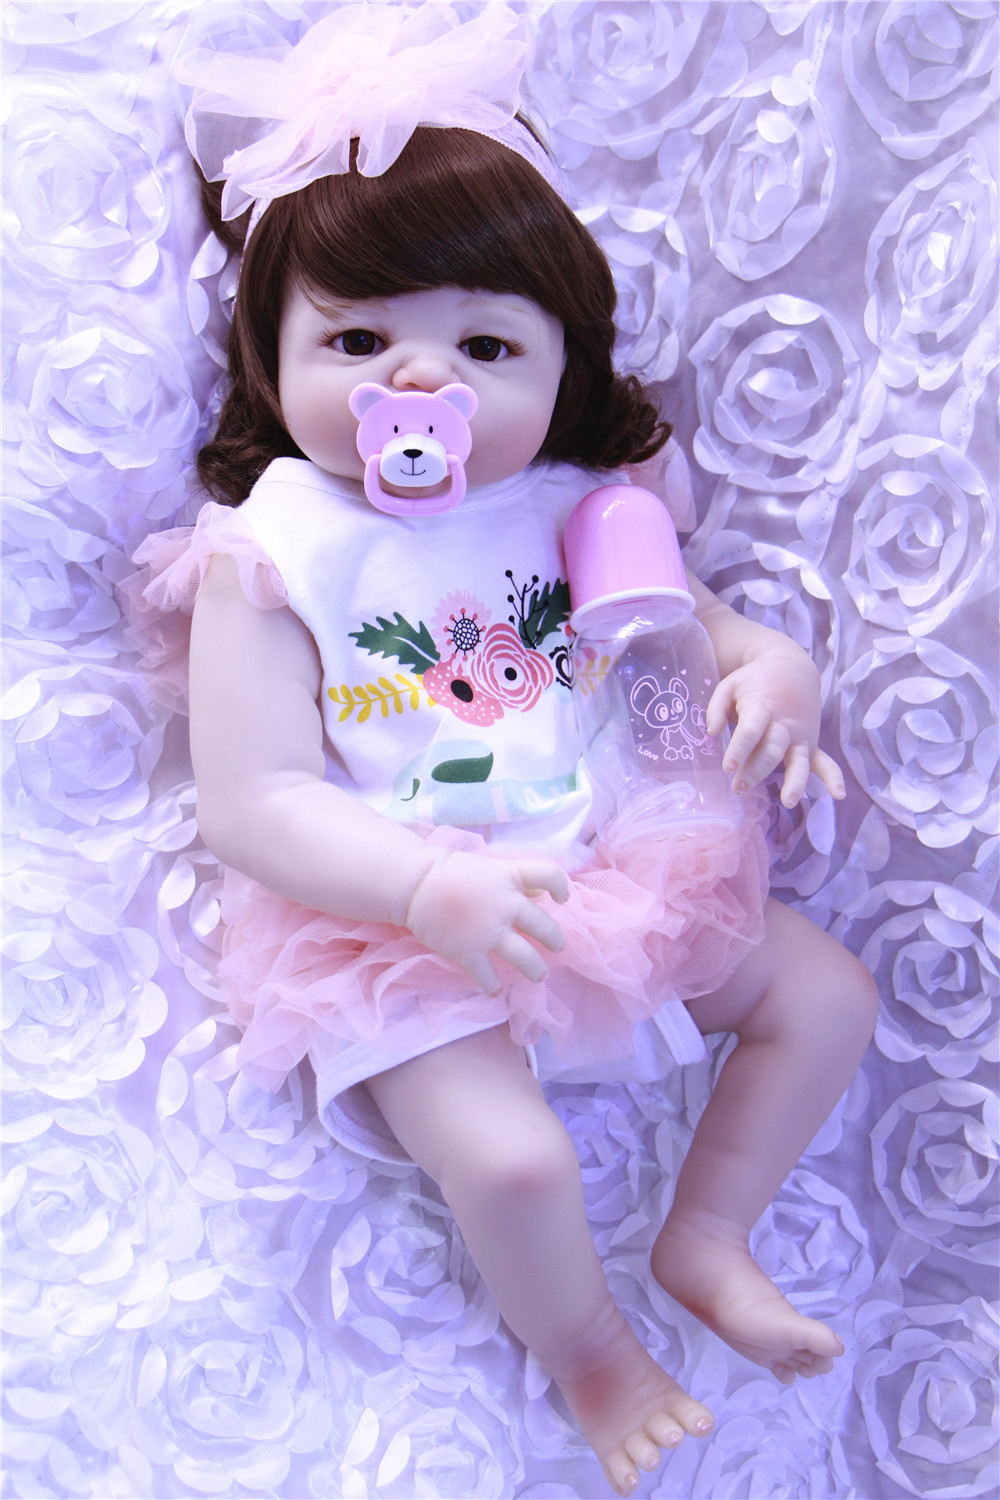 Reborn bebe dolls 23 NPK  full silicone reborn baby girl dolls toys gift white skin curly hair  new born princess toddler doll Reborn bebe dolls 23 NPK  full silicone reborn baby girl dolls toys gift white skin curly hair  new born princess toddler doll